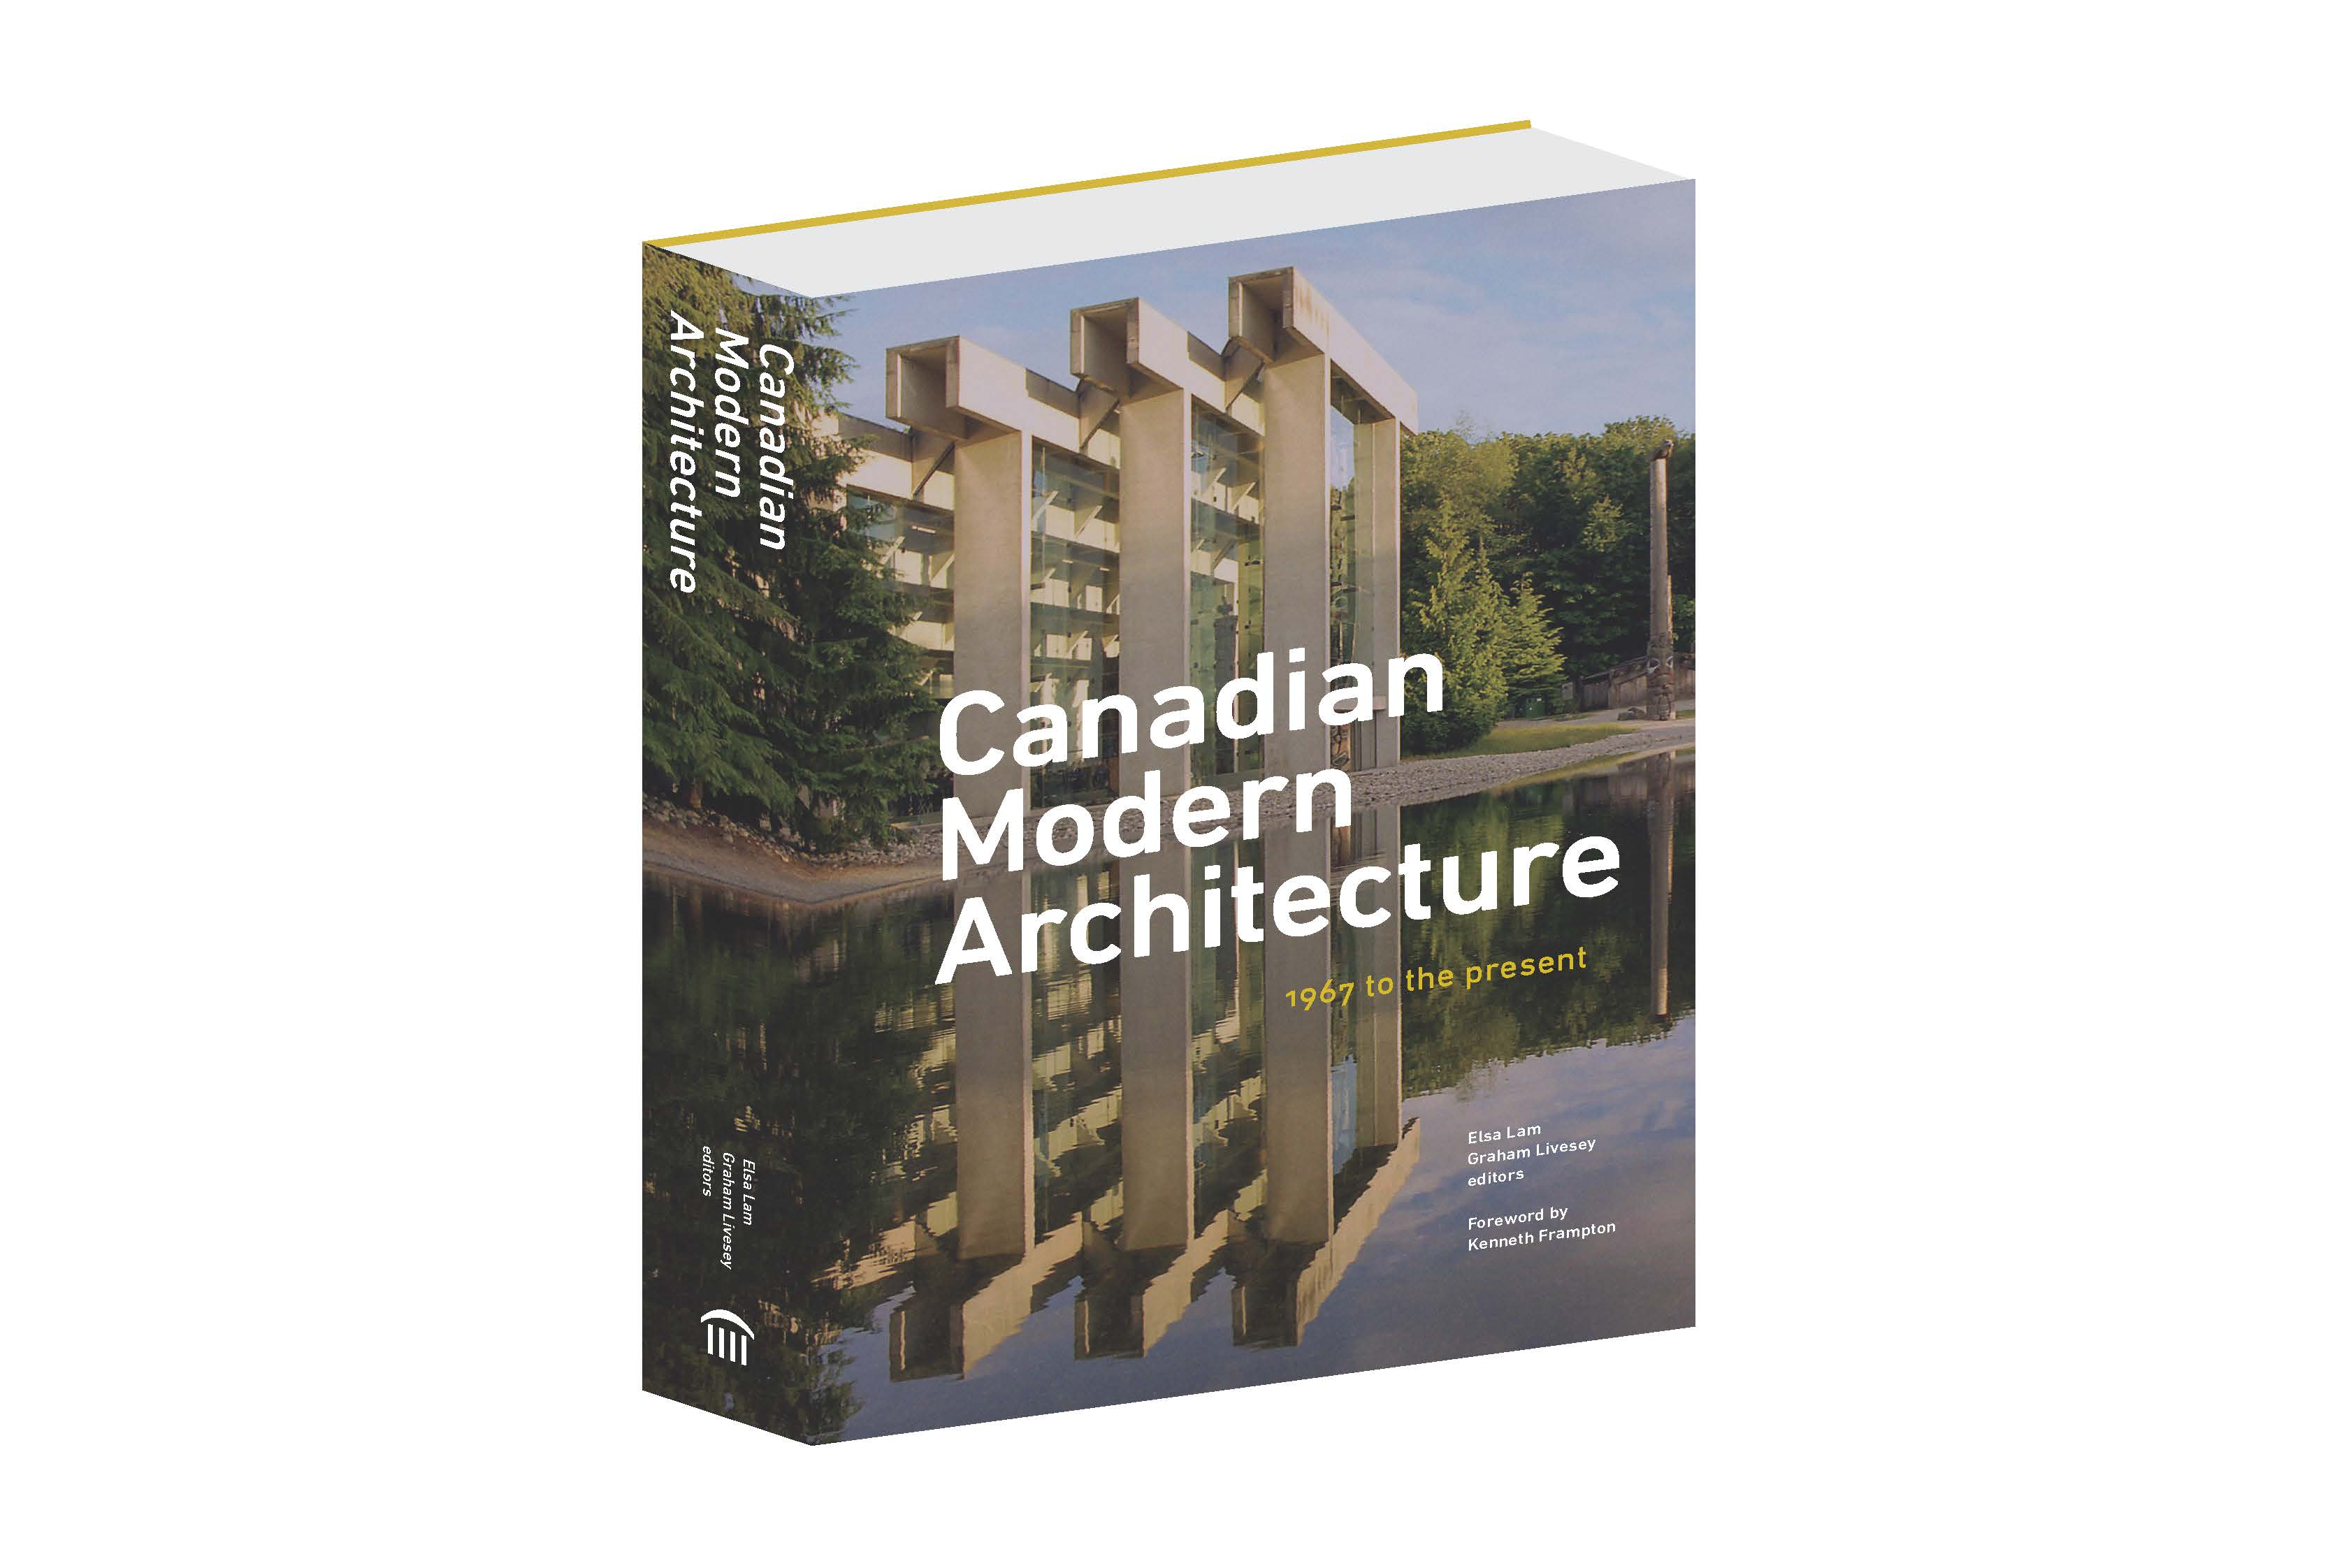 Save the date: Canadian Modern Architecture launches in Vancouver, Lethbridge, Waterloo, Toronto and Halifax